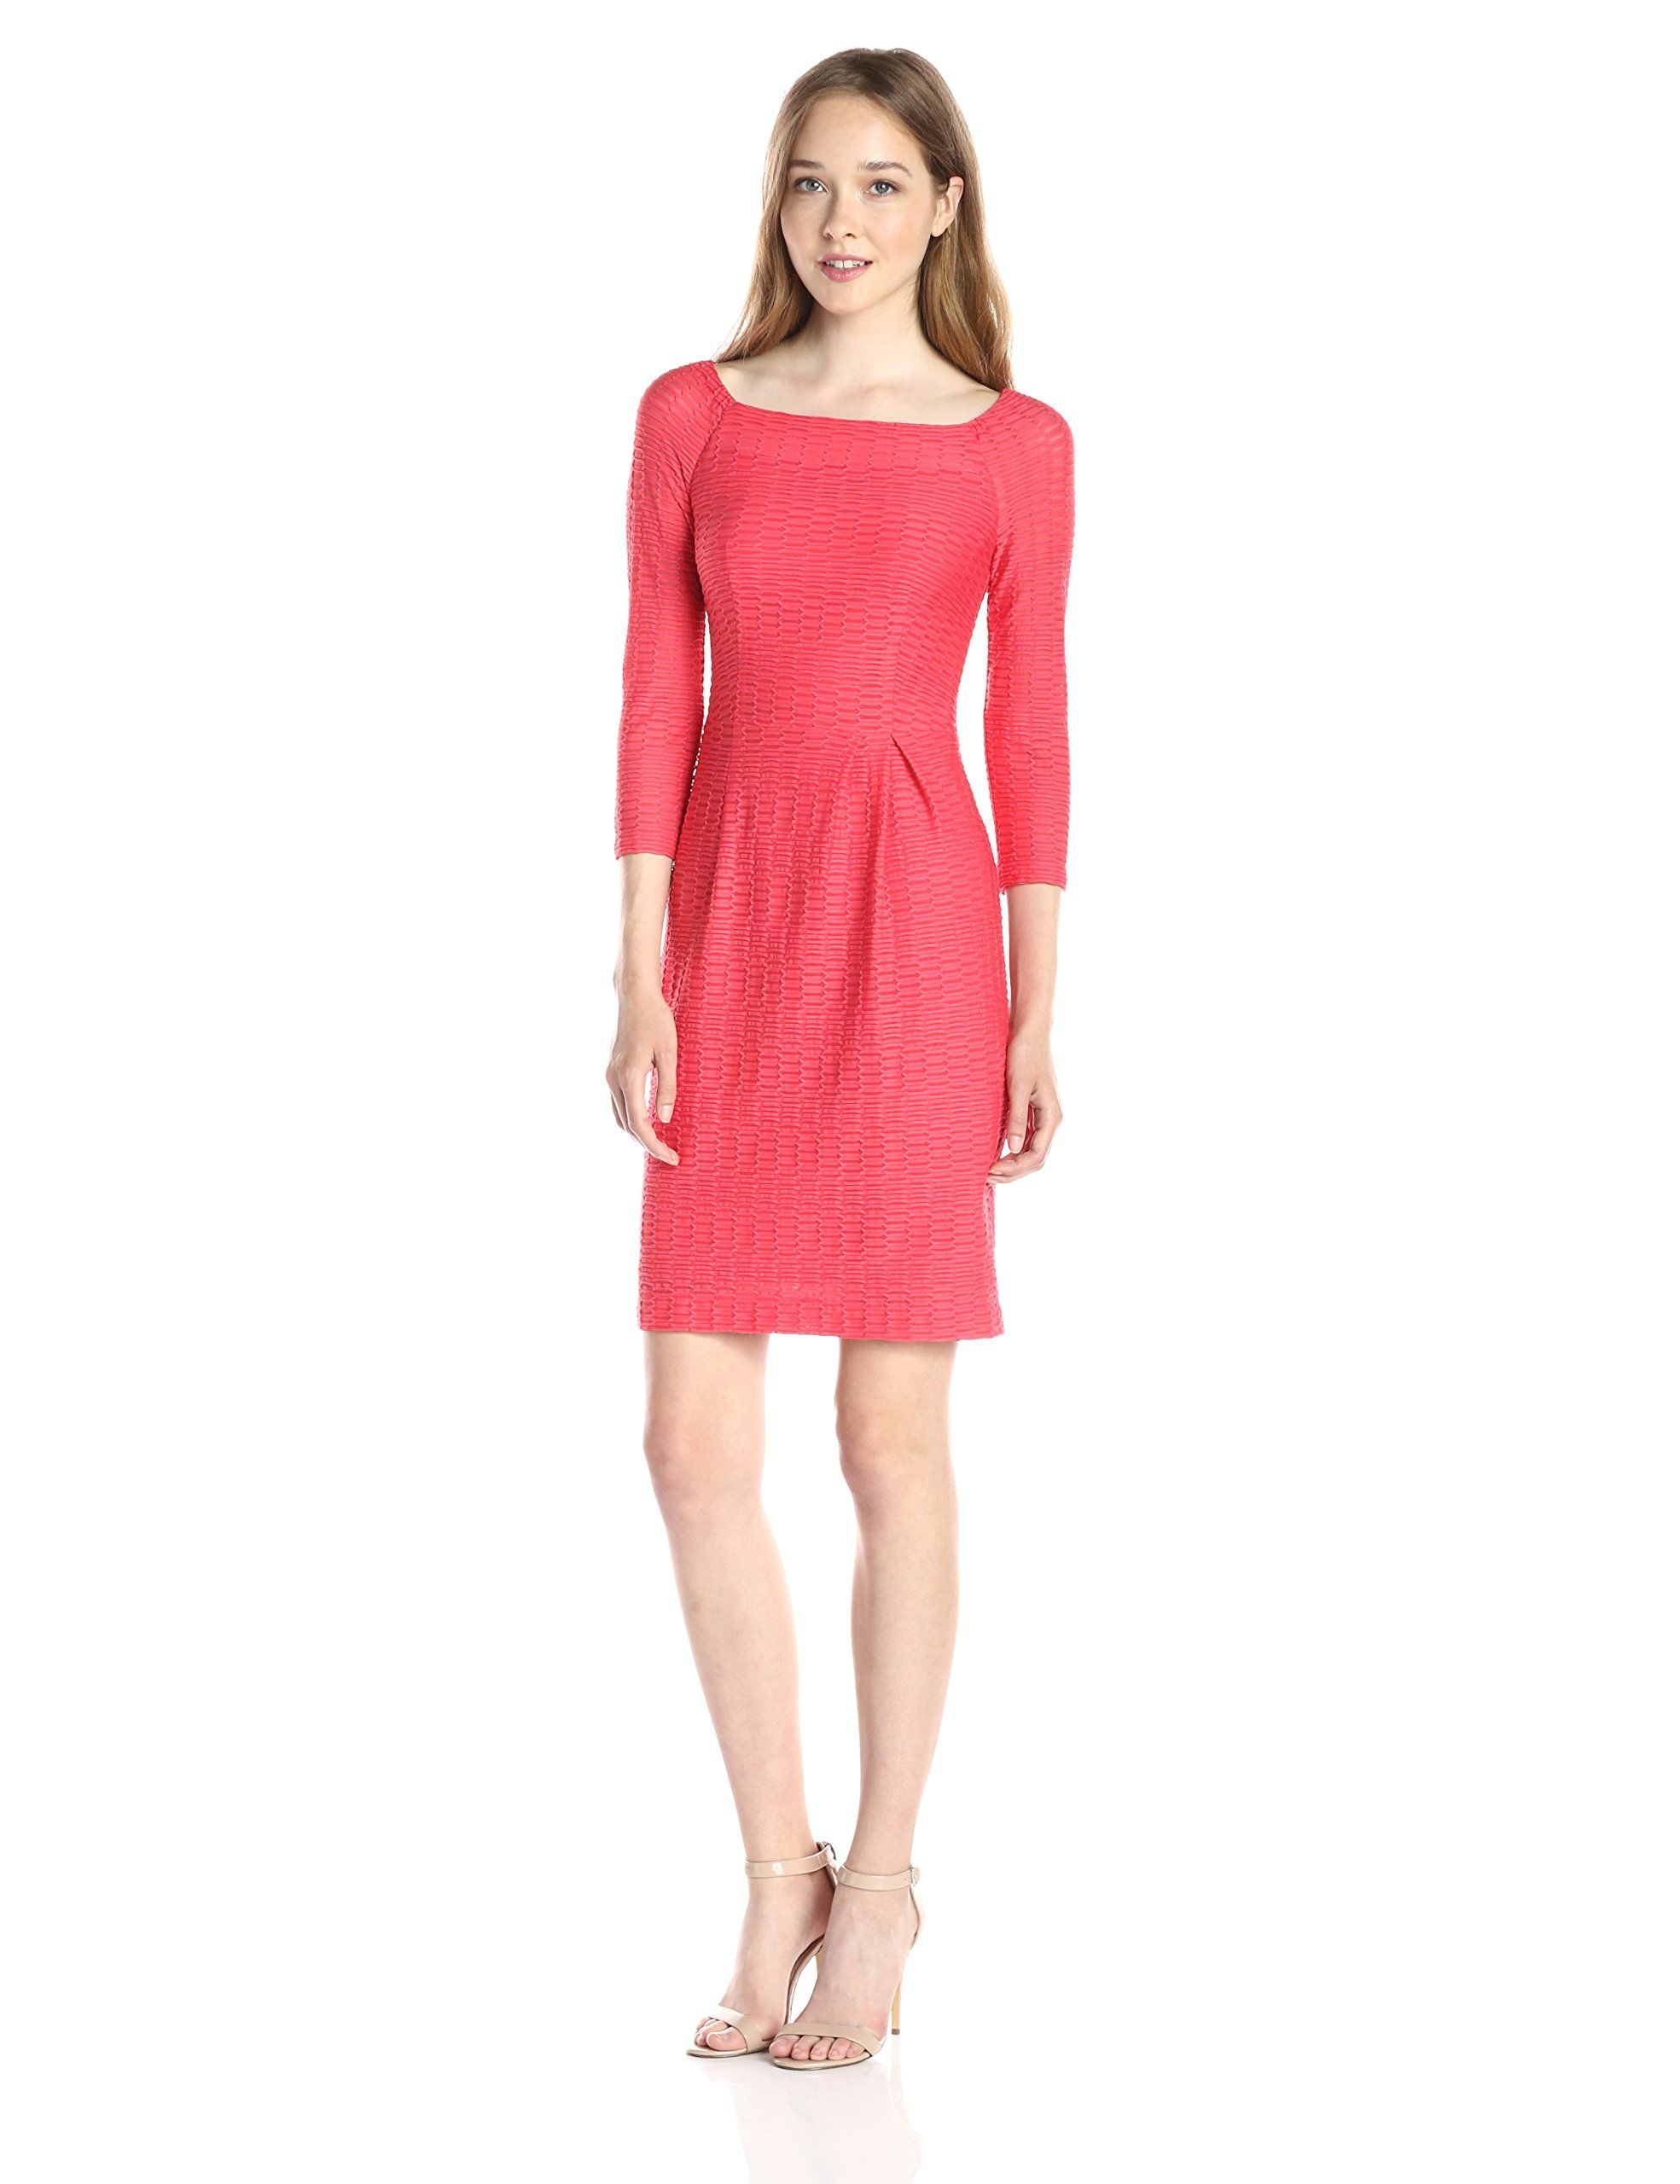 Nanette lepore womenus sleek and chic sleeve boat neck dress